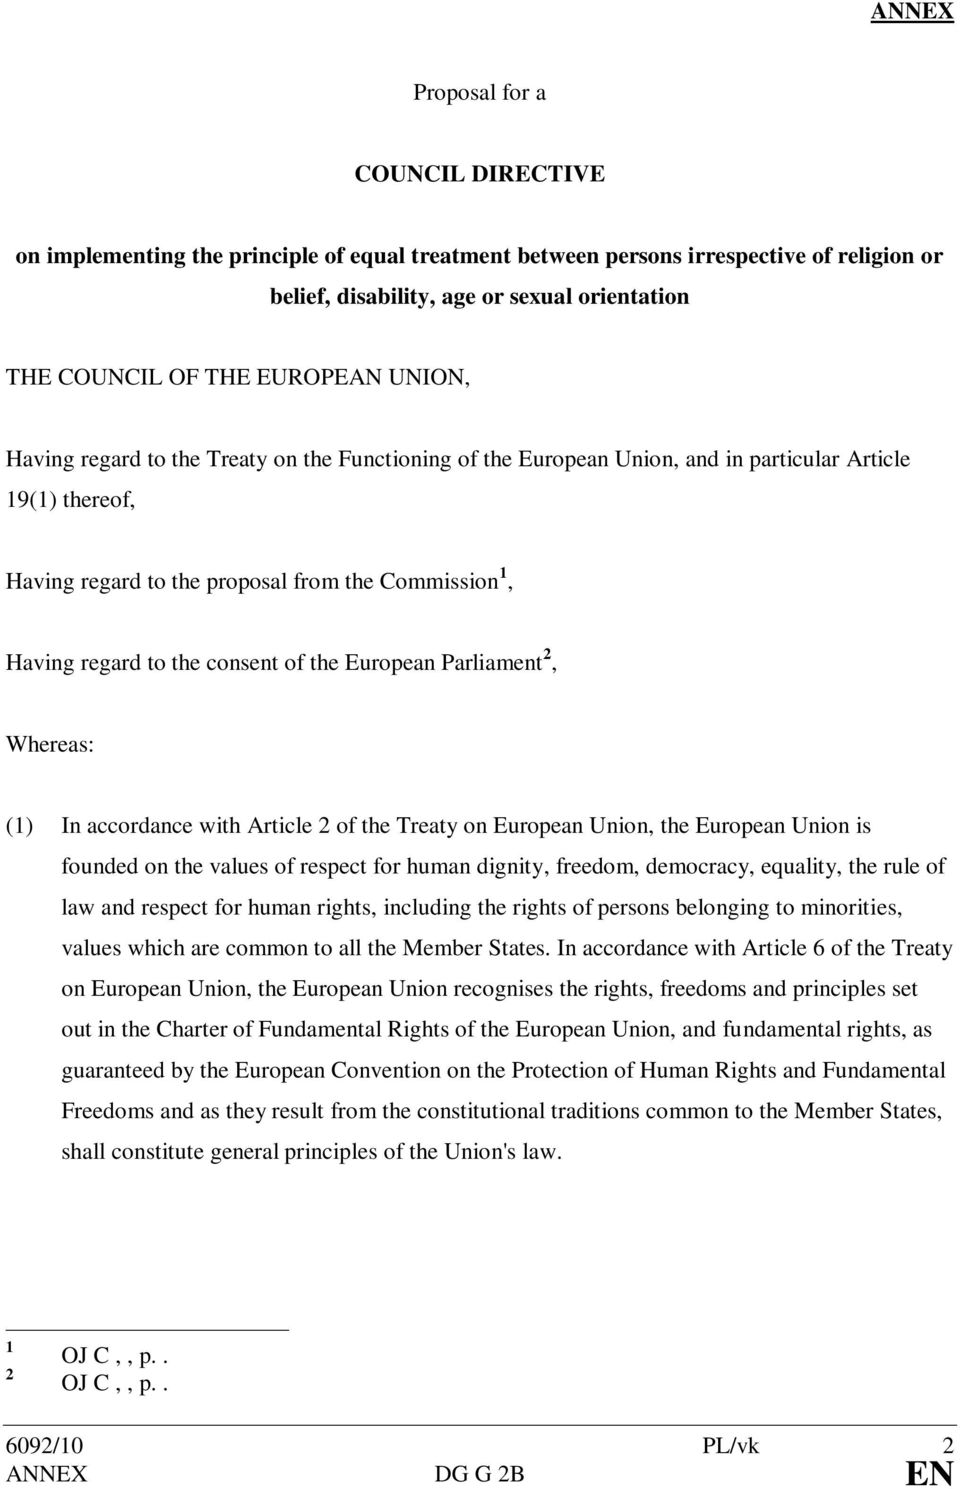 the consent of the European Parliament 2, Whereas: (1) In accordance with Article 2 of the Treaty on European Union, the European Union is founded on the values of respect for human dignity, freedom,